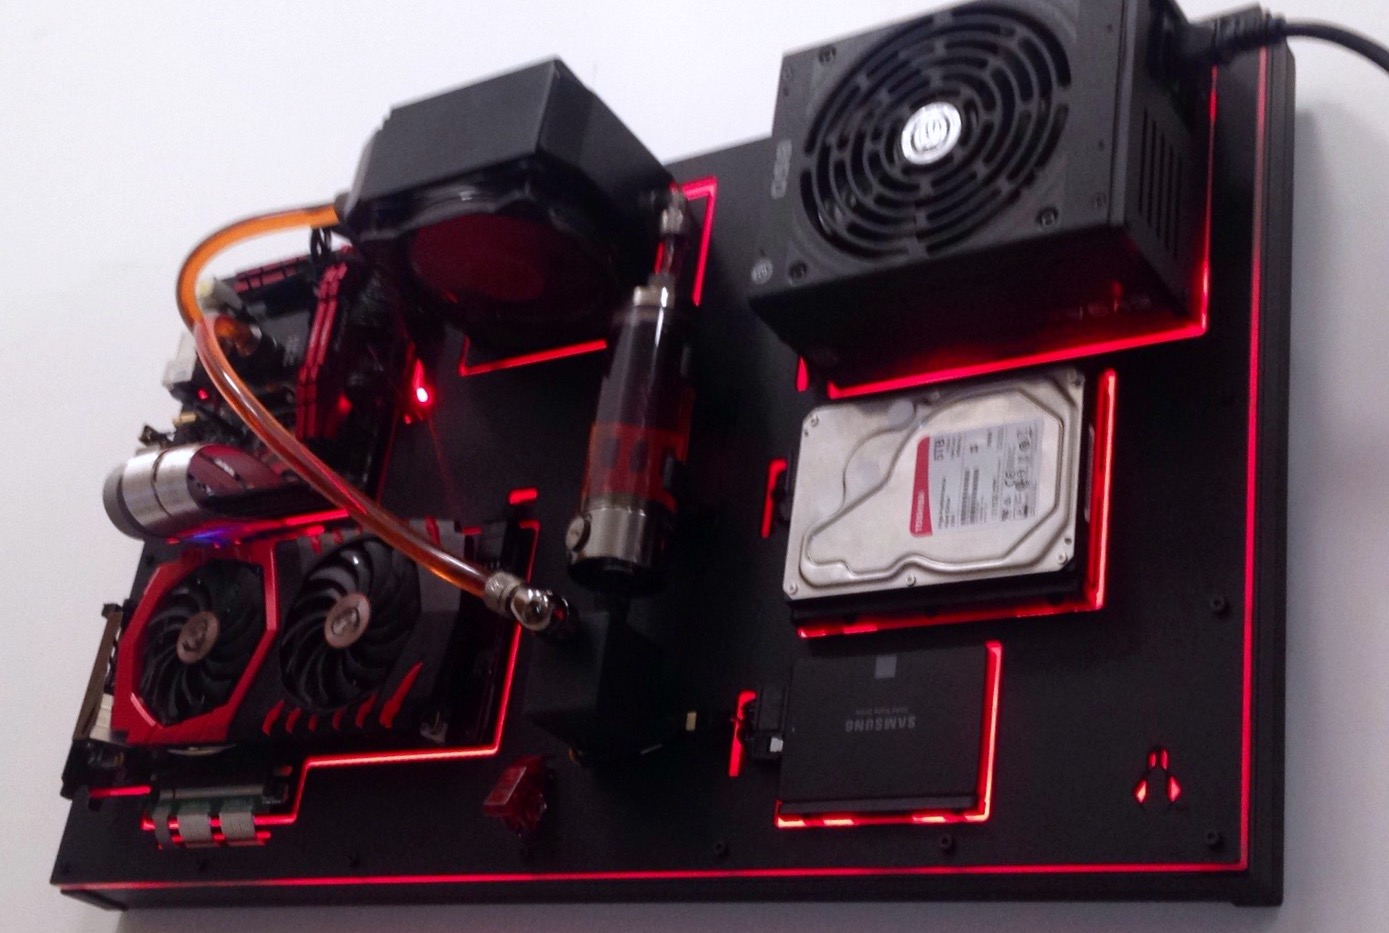 - Wall-mounted PC Build With Modular Custom Case -FireFly-